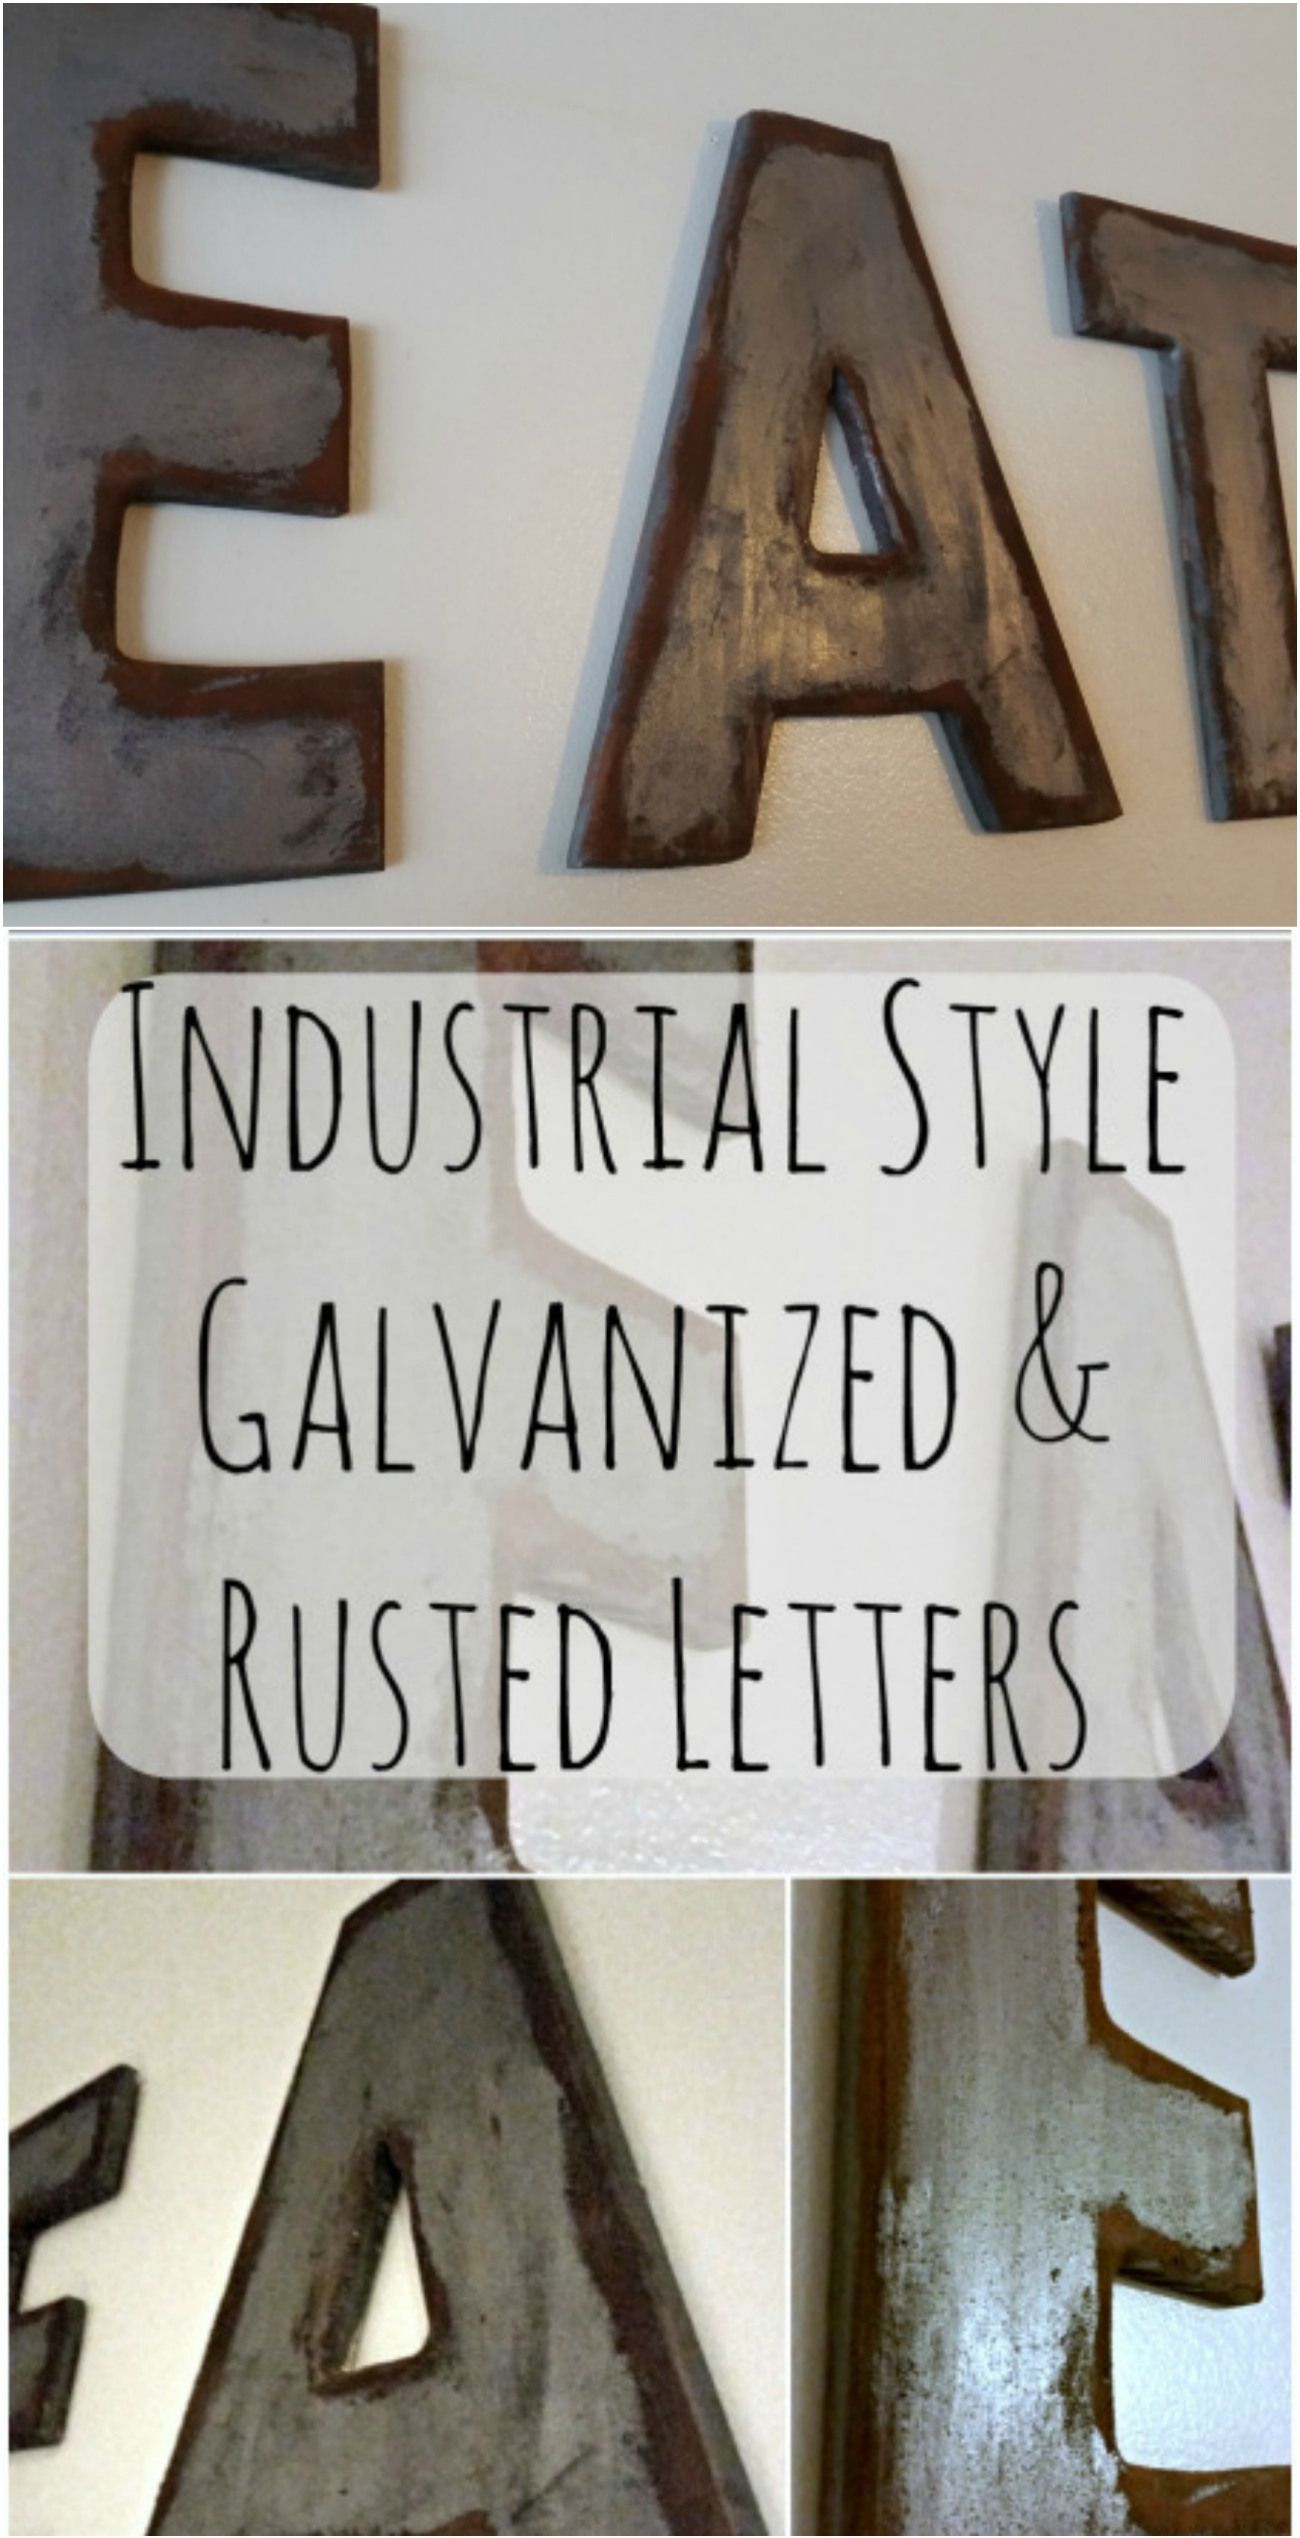 Galvanized Letter H Industrial Style Galvanized & Rusted Letters  Rustic Wall Decor